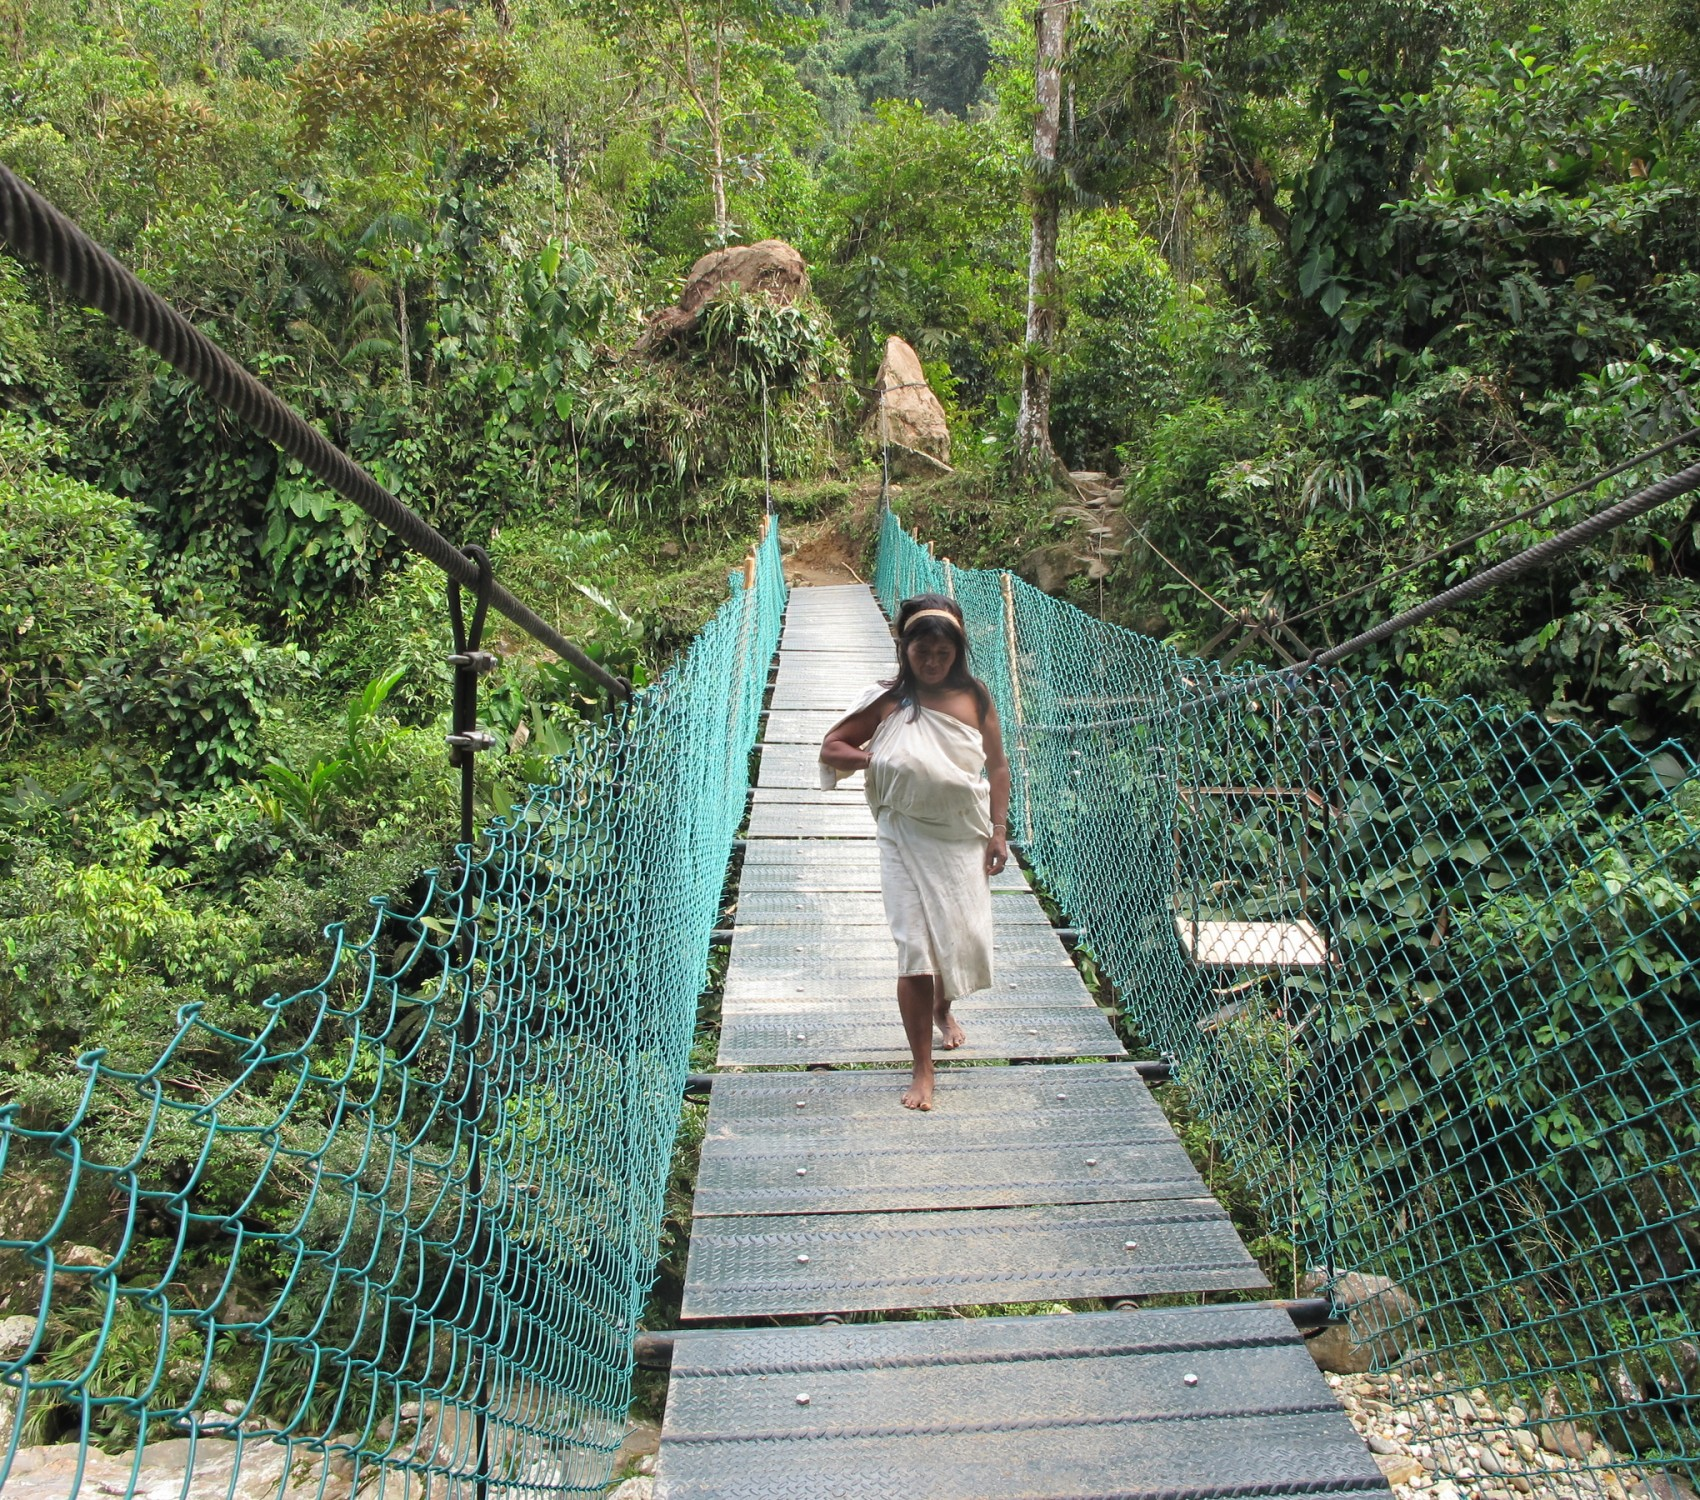 CiudadPerdida_NewSuspensionBridge_creditGHF